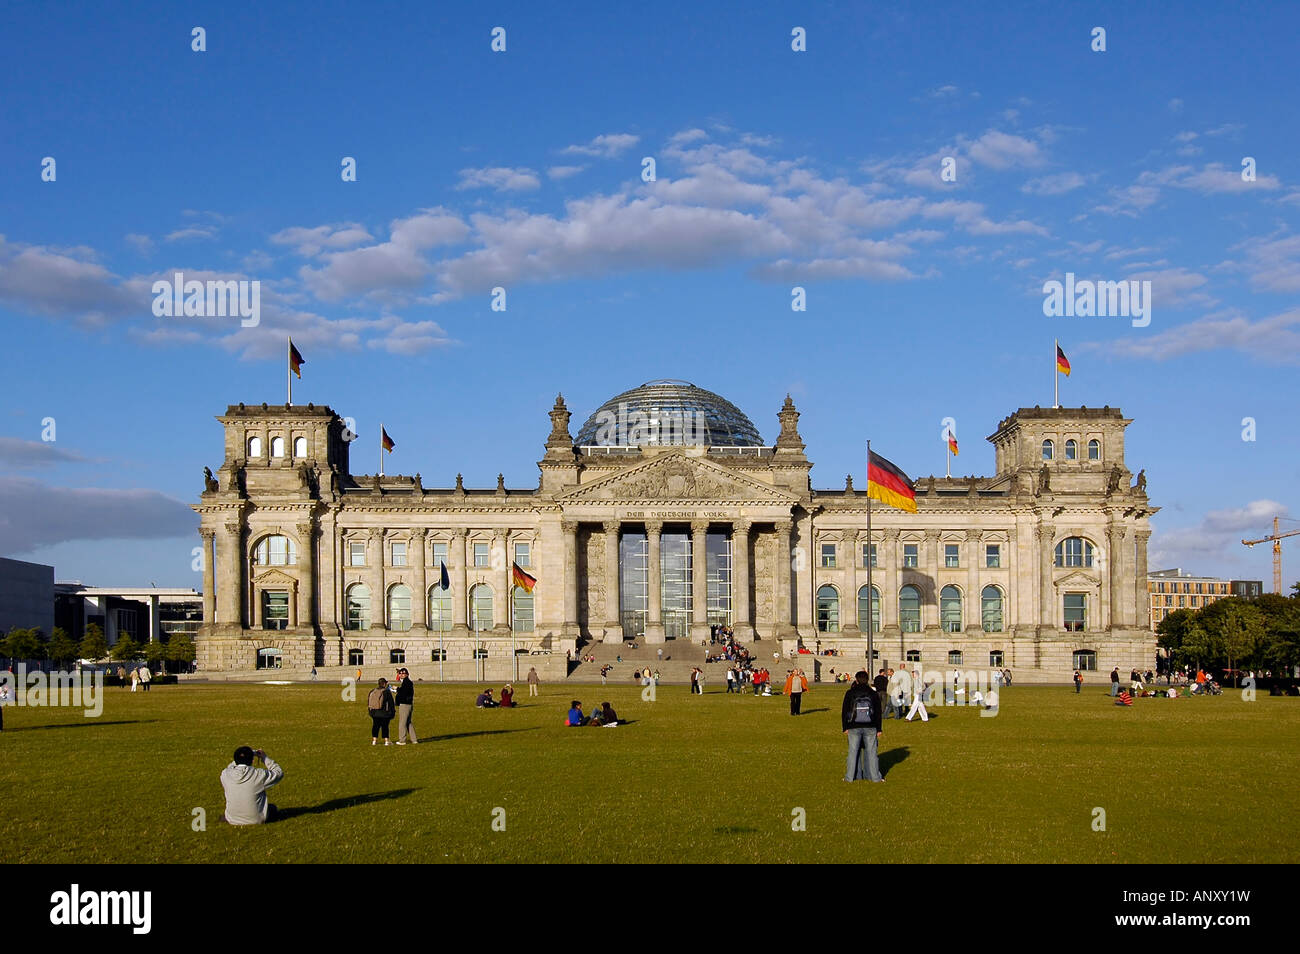 The Reichstag building and its park in Berlin, Germany. This building hosts the German parliament and is a symbol - Stock Image